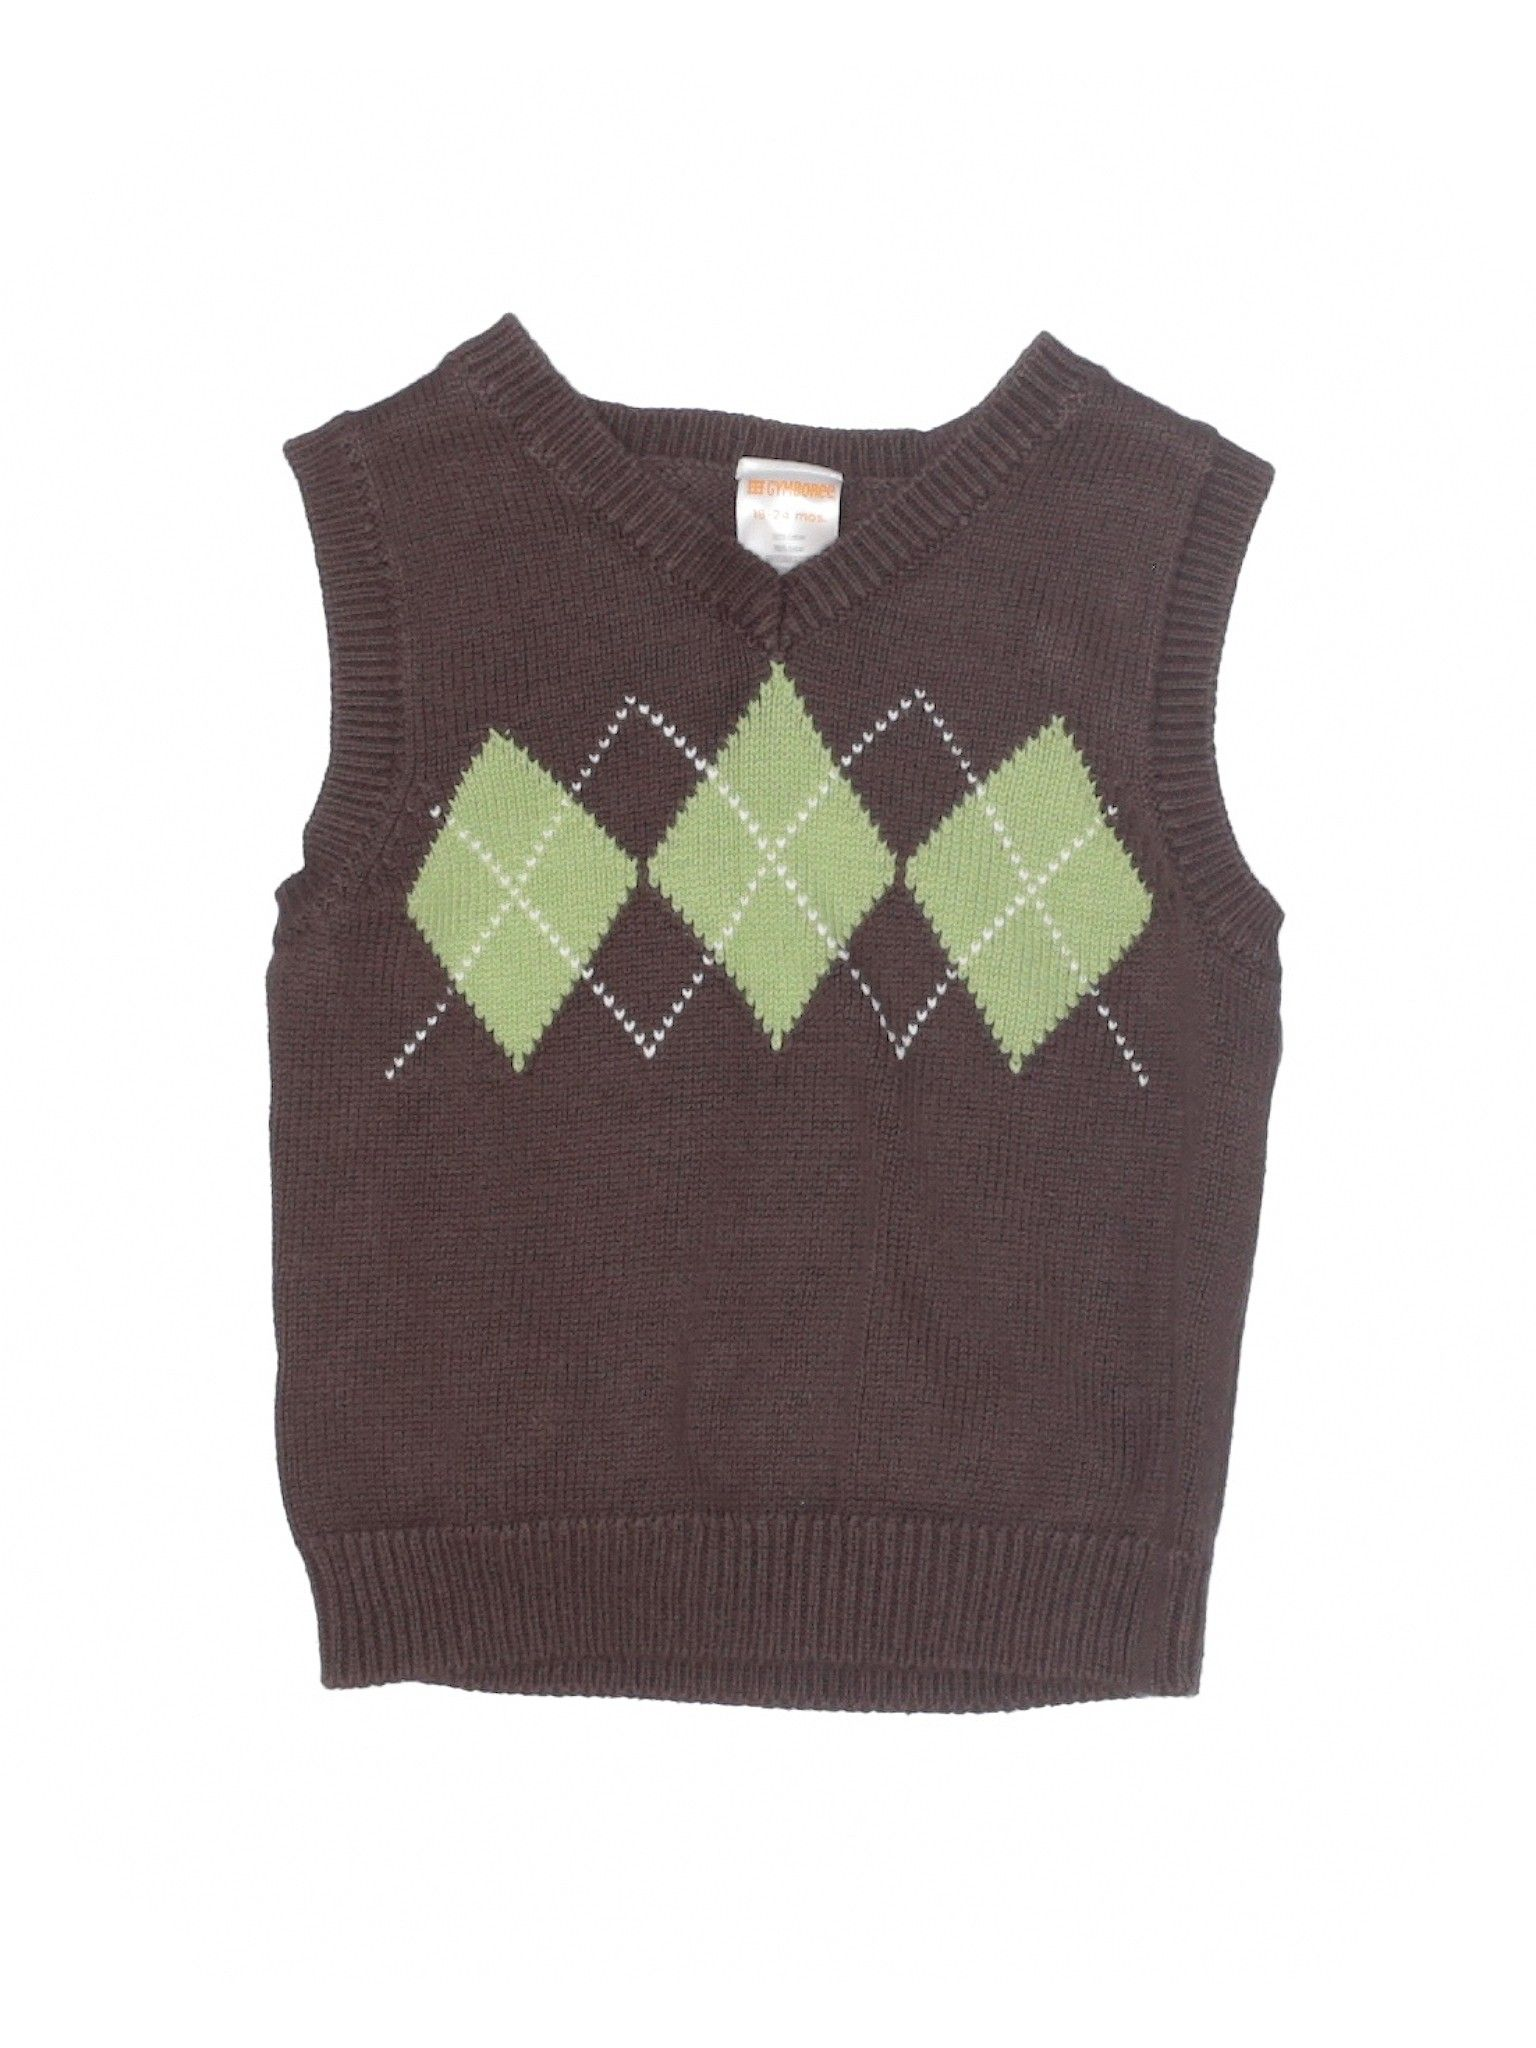 Vesti Boys' Sweaters On Sale Up To 90% Off Retail in 2020 | Clothes,  Sweaters, Fashion